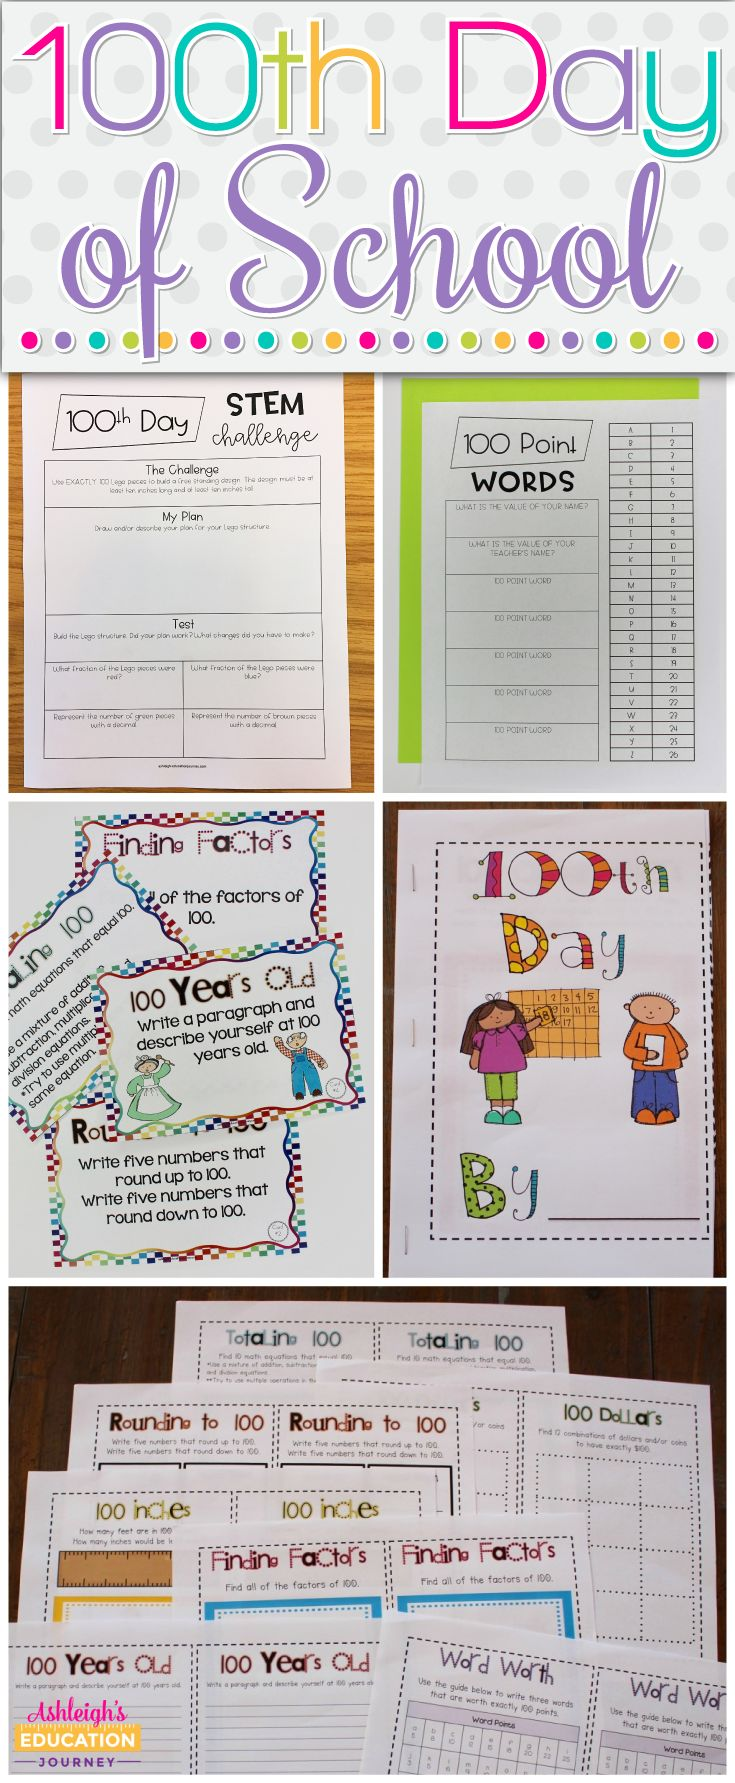 Enjoy these 100th day of school activities and games geared for upper elementary students!